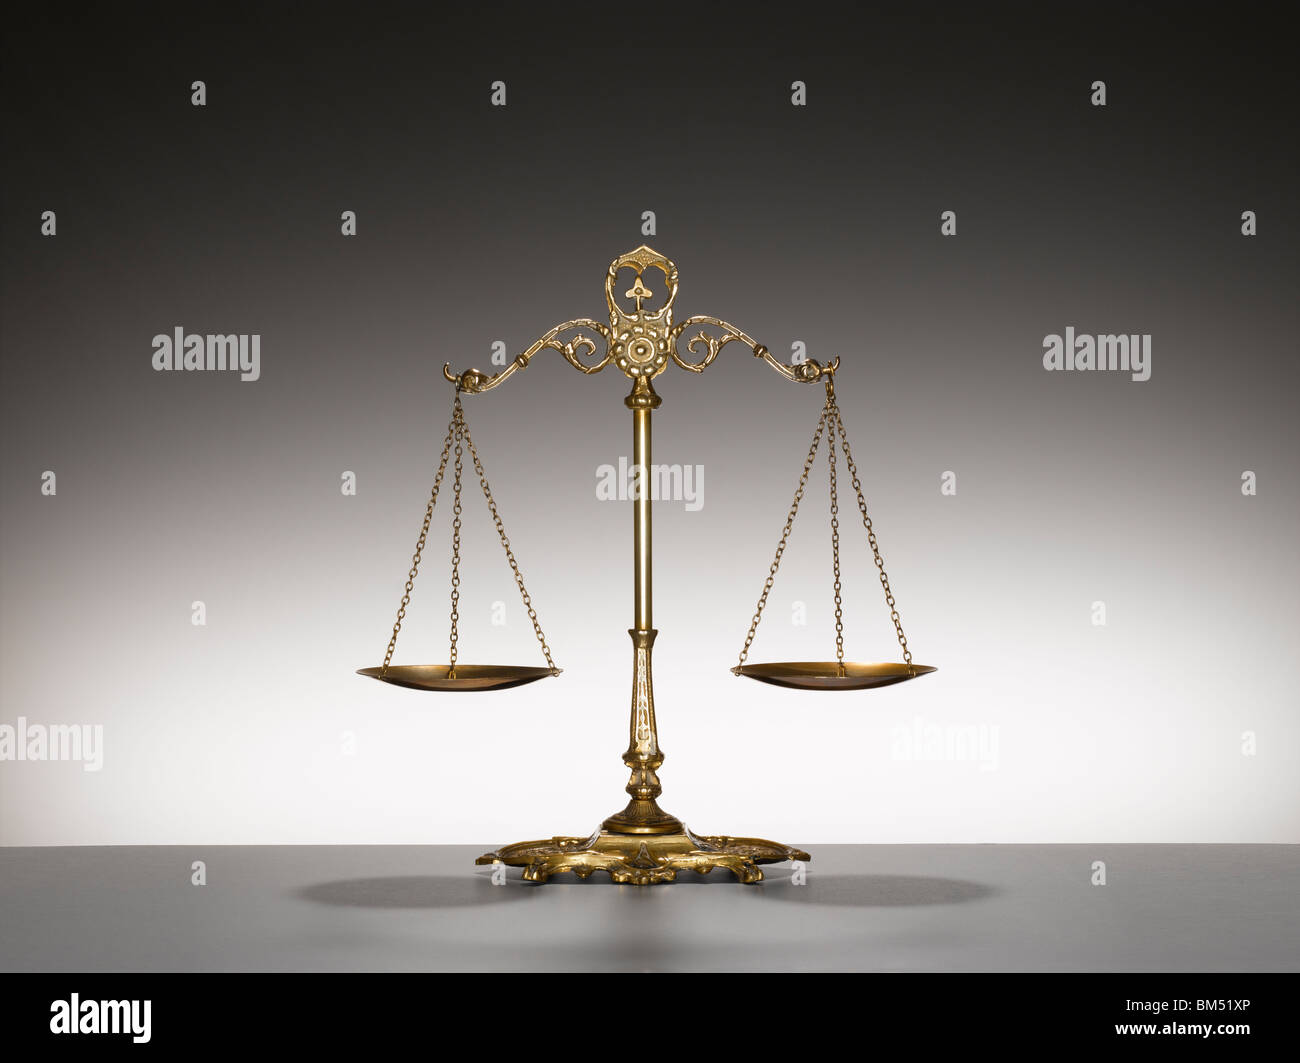 Weighing Scales - Stock Image